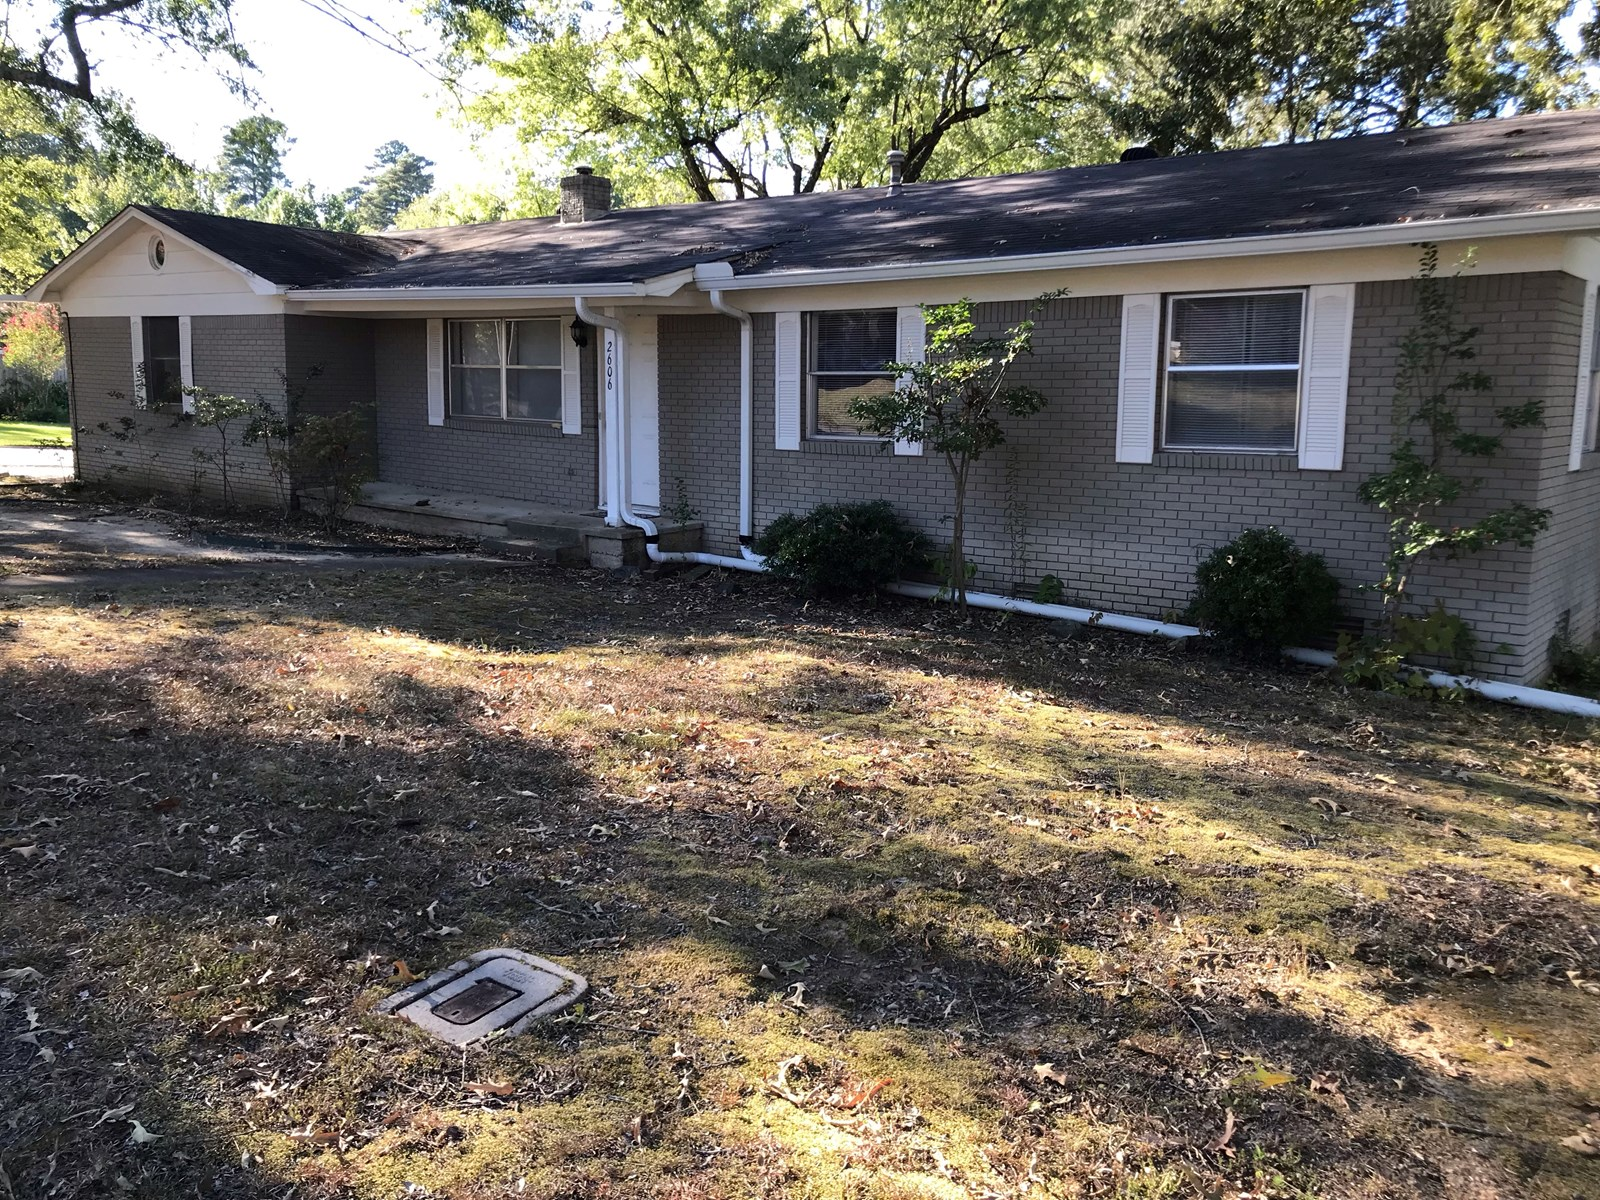 Beautiful home located in quiet neighbor. Fenced in backyard